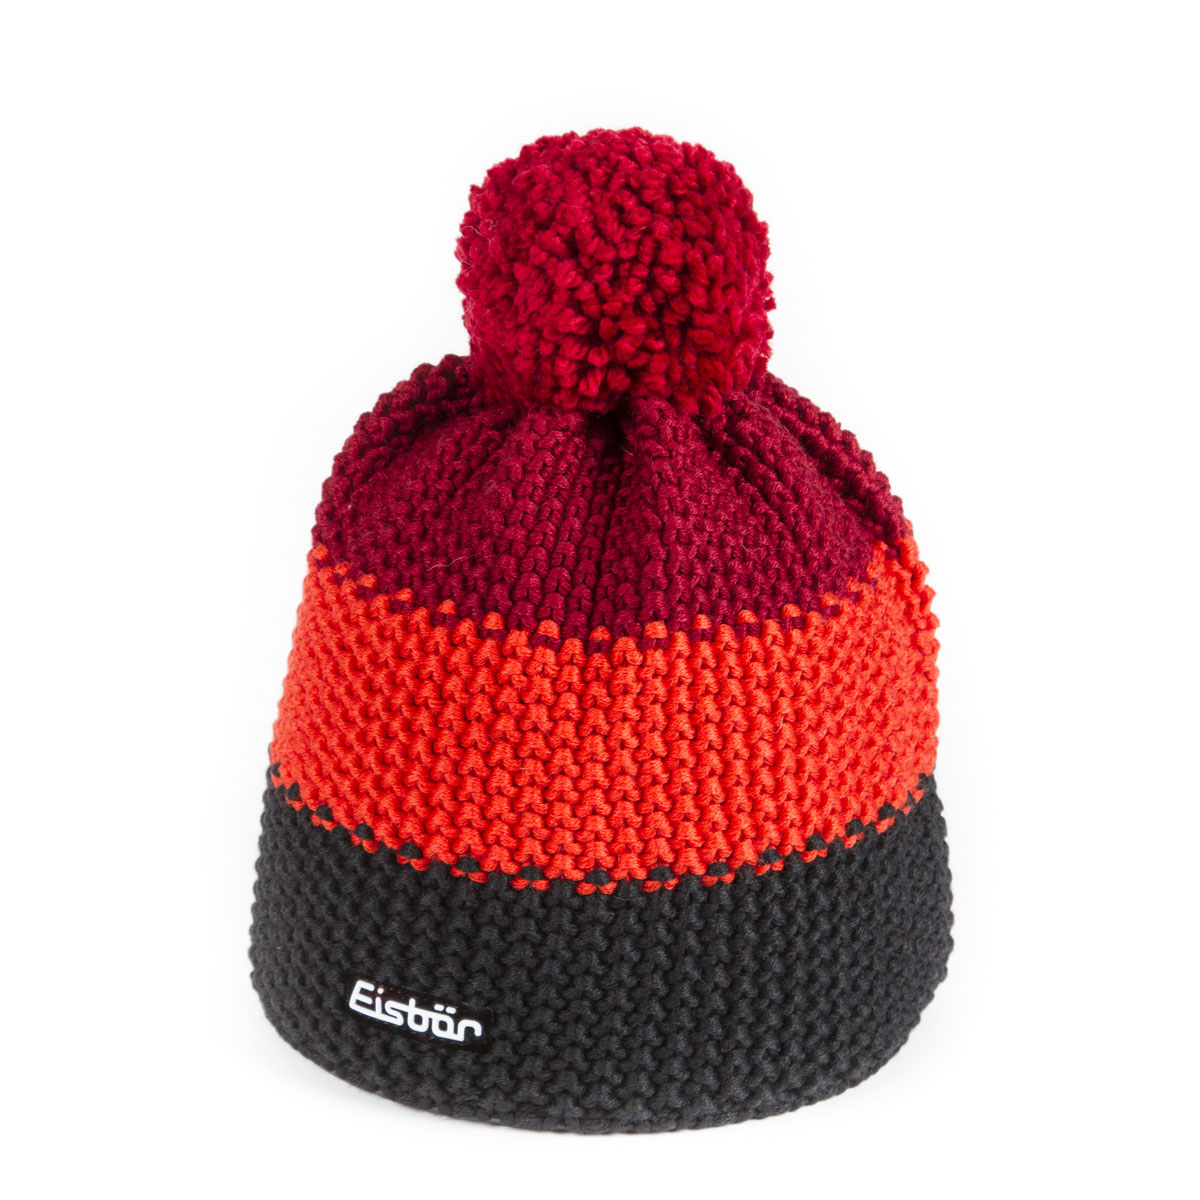 888323c33ad White Star Bobble Hat Eisbar - Pompom Hat